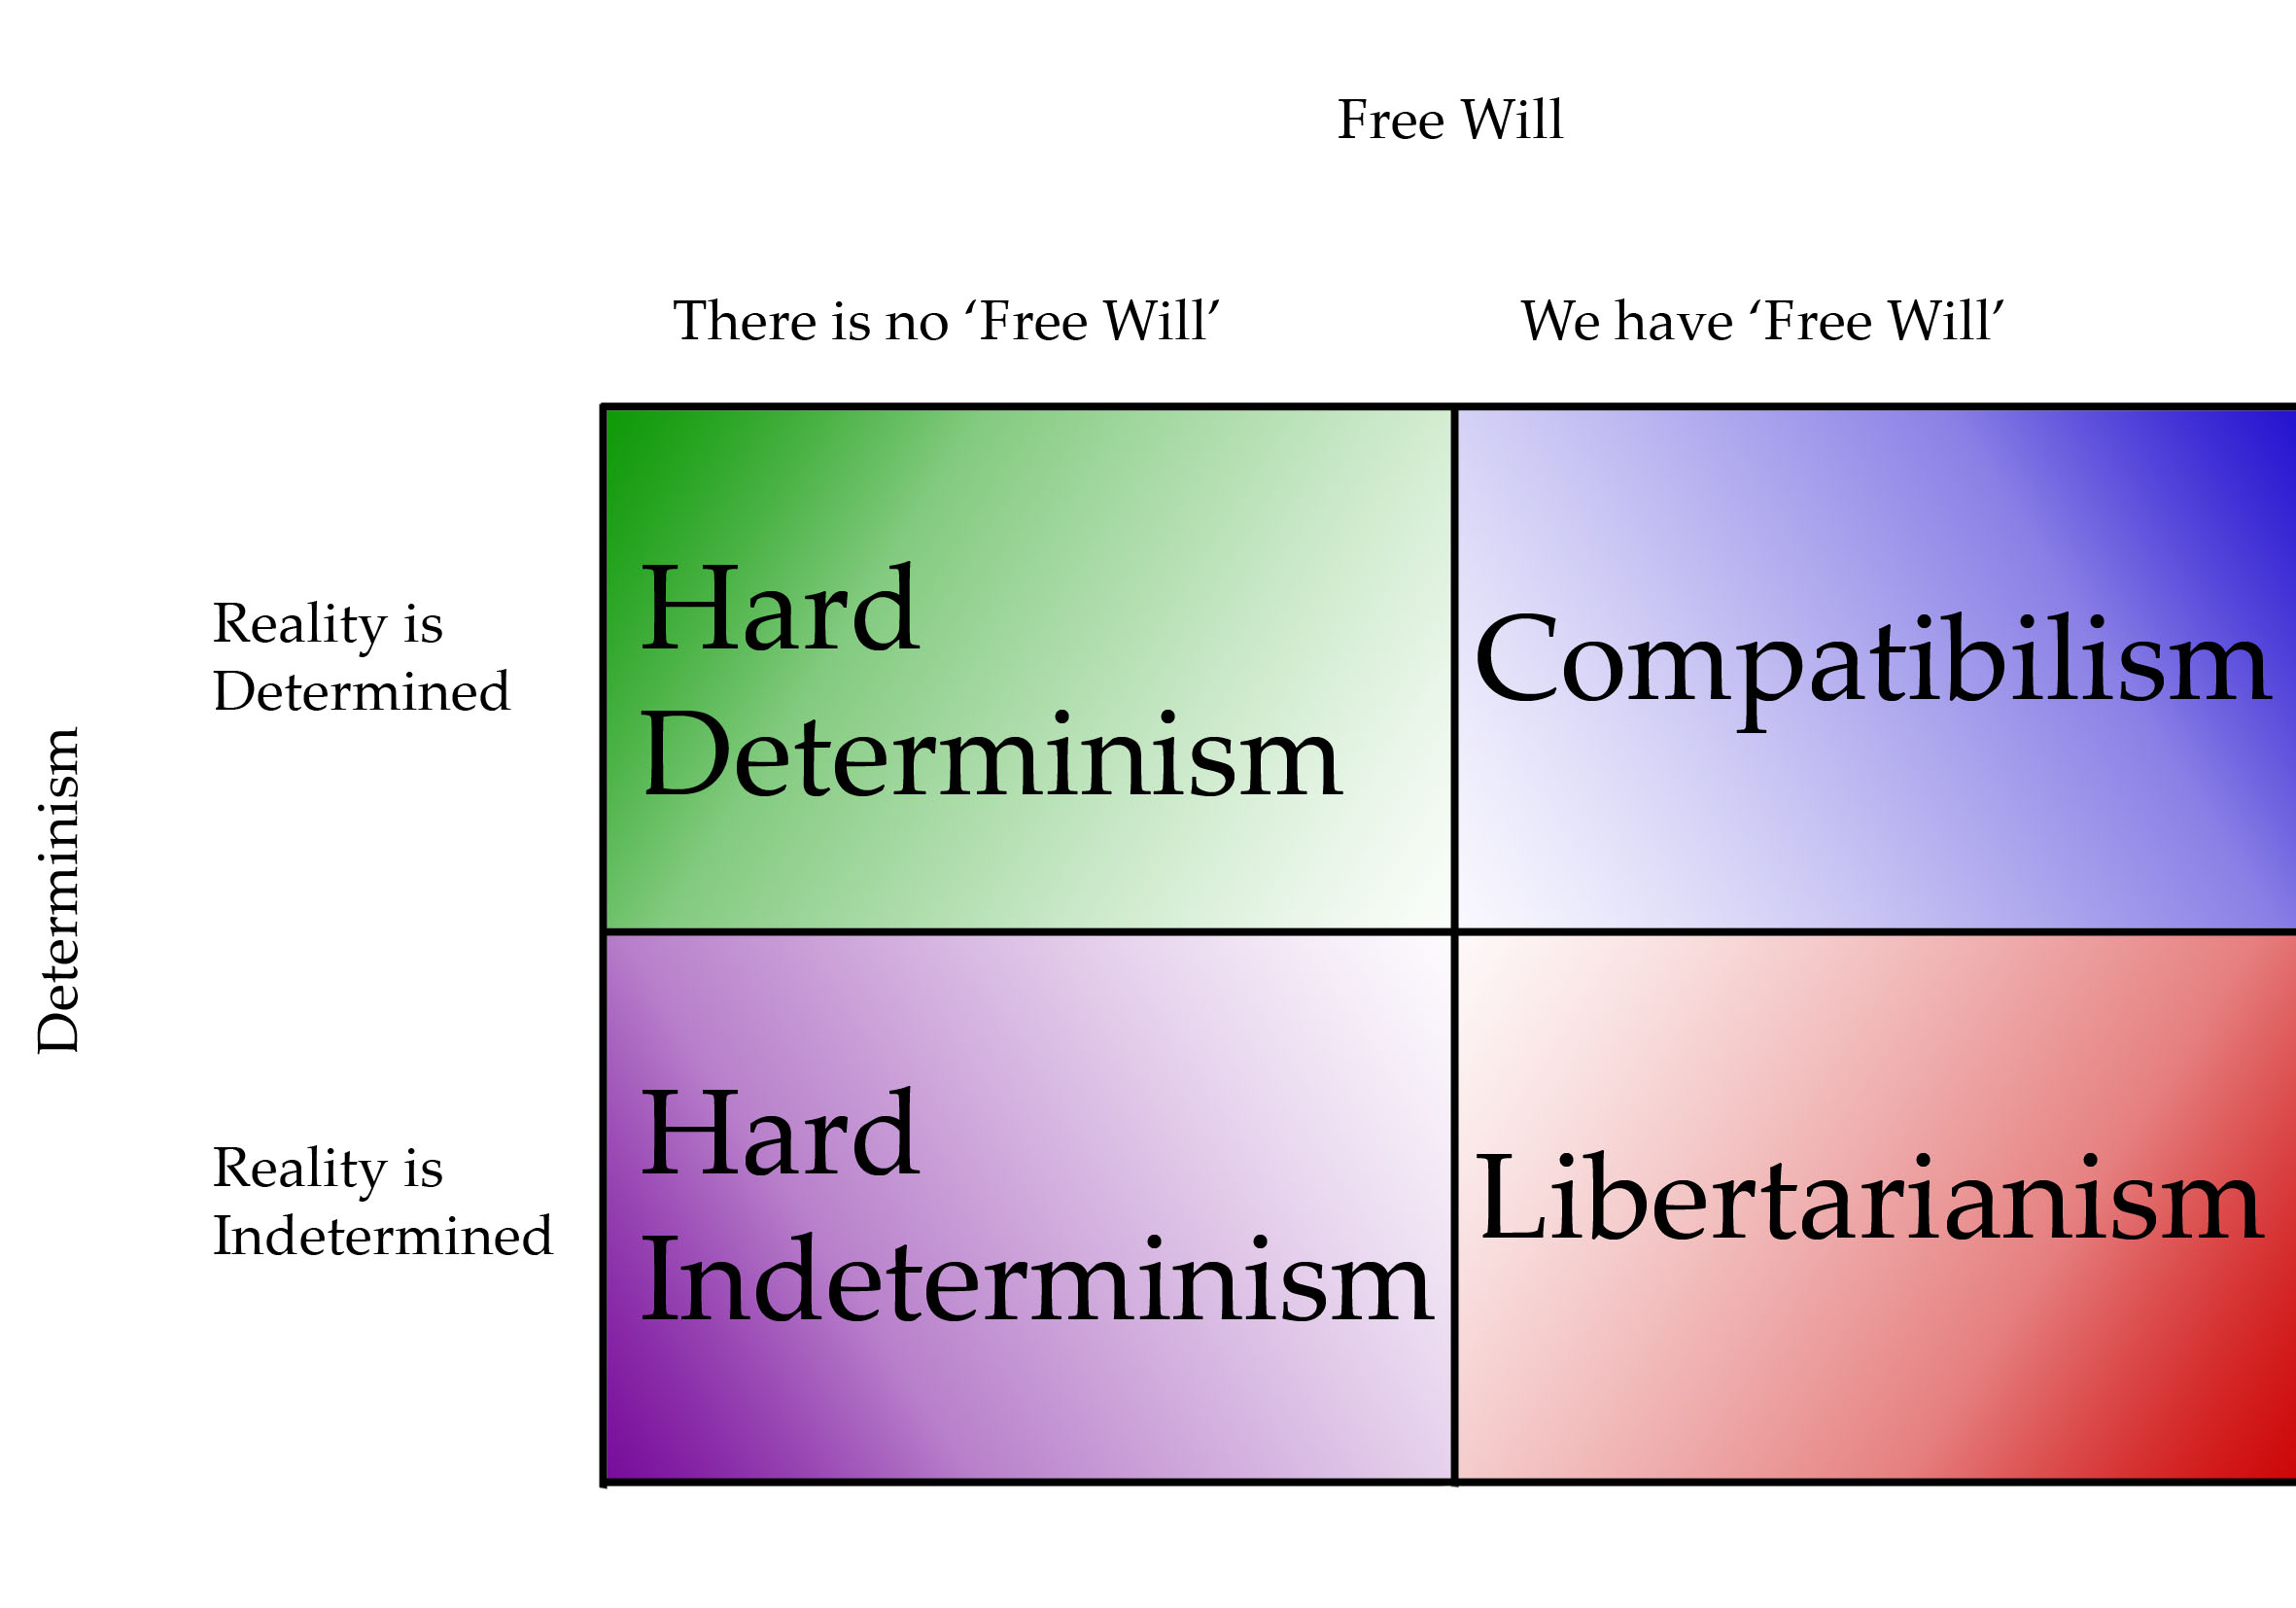 philosophy comparing libertarianism compatibilism and determinism This paper is aimed at providing a comparative study of determinism, compatibilism, and libertarianism the study will compare and illustrate the contrast between determinism compatibilism and libertarianism along with describing its basic concepts.